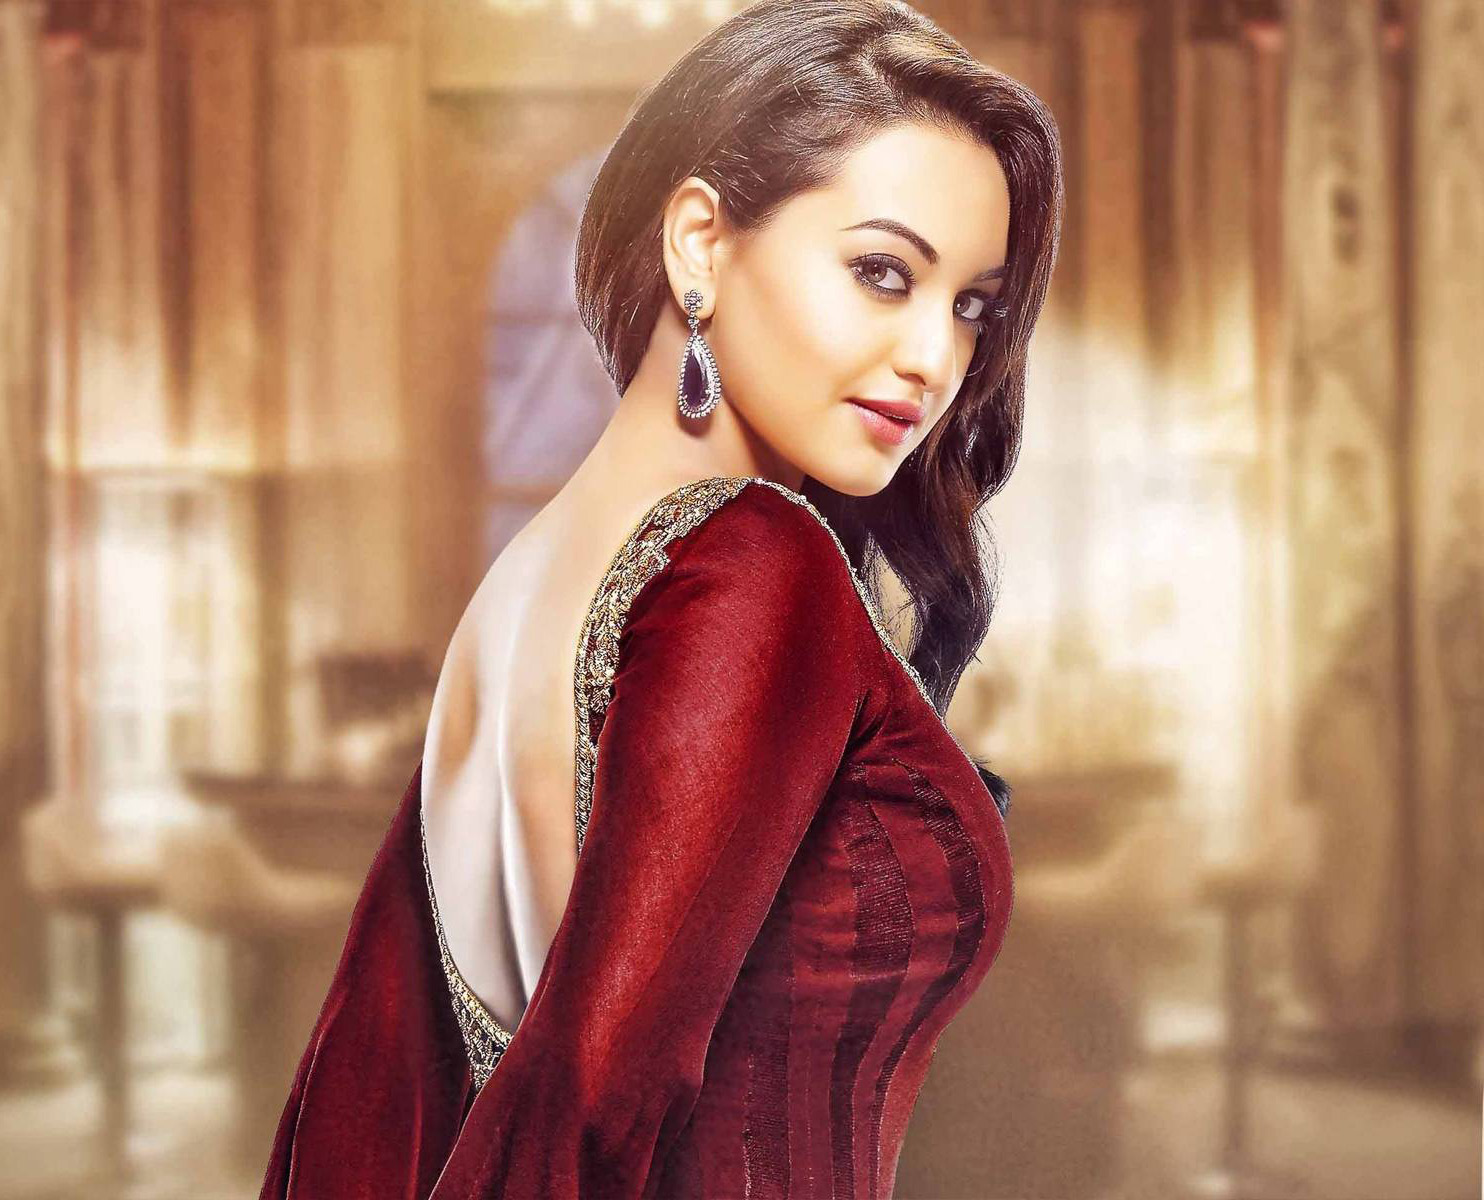 4k Ultra HD Wallpaper: Sonakshi Sinha HD Wallpapers